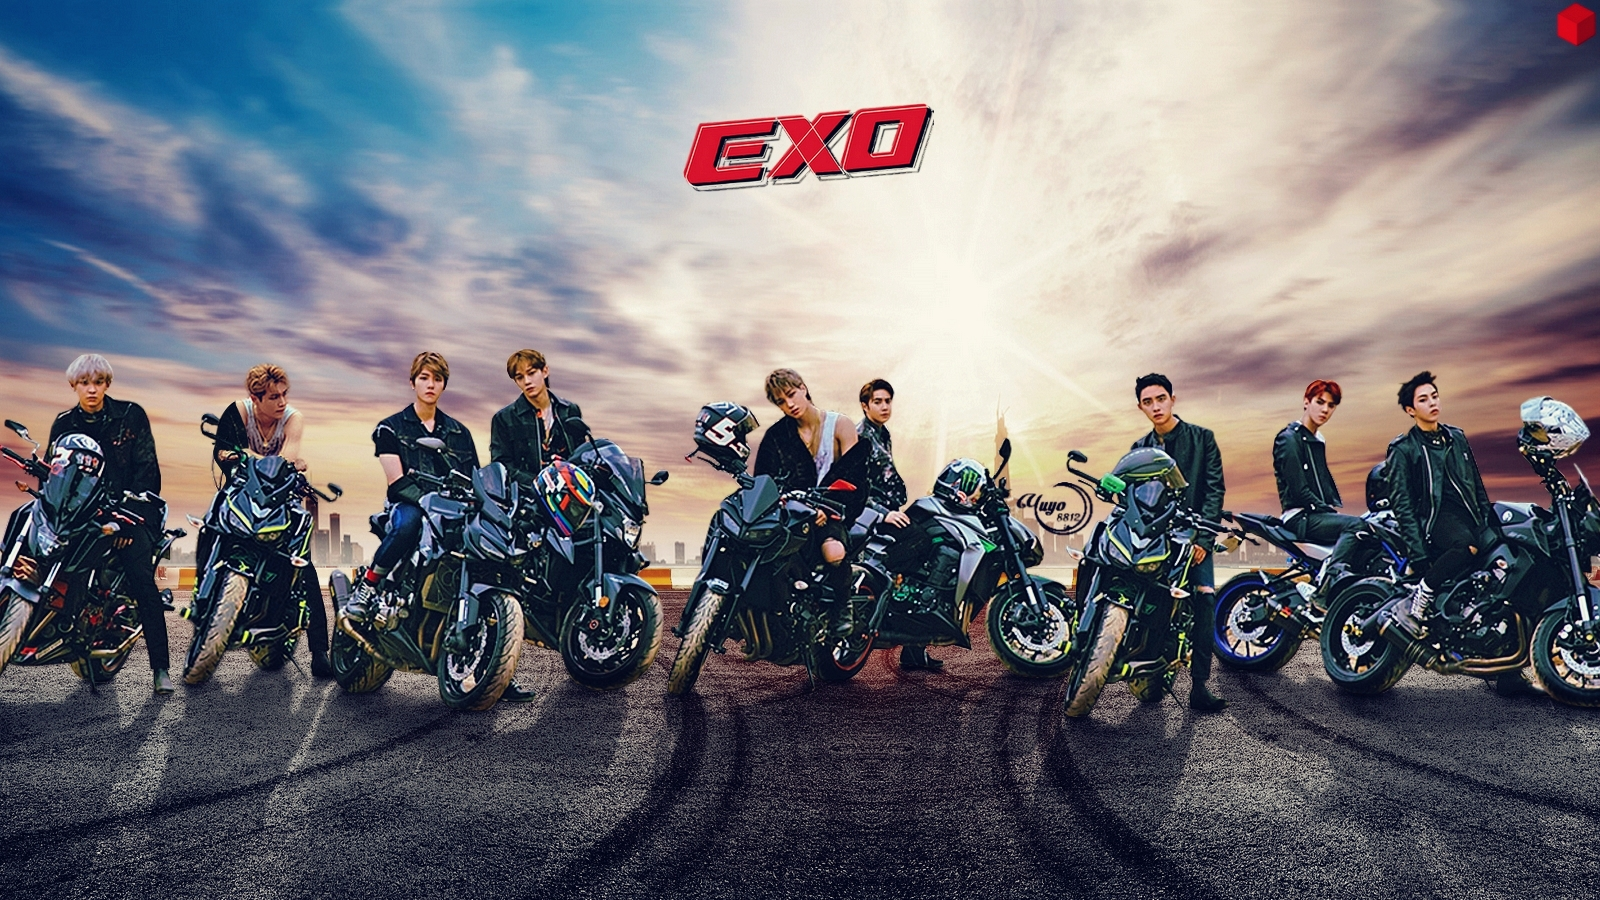 Yulliyo8812 Images Exo Tempo 3 Wallpaper Hd Fond D Ecran And